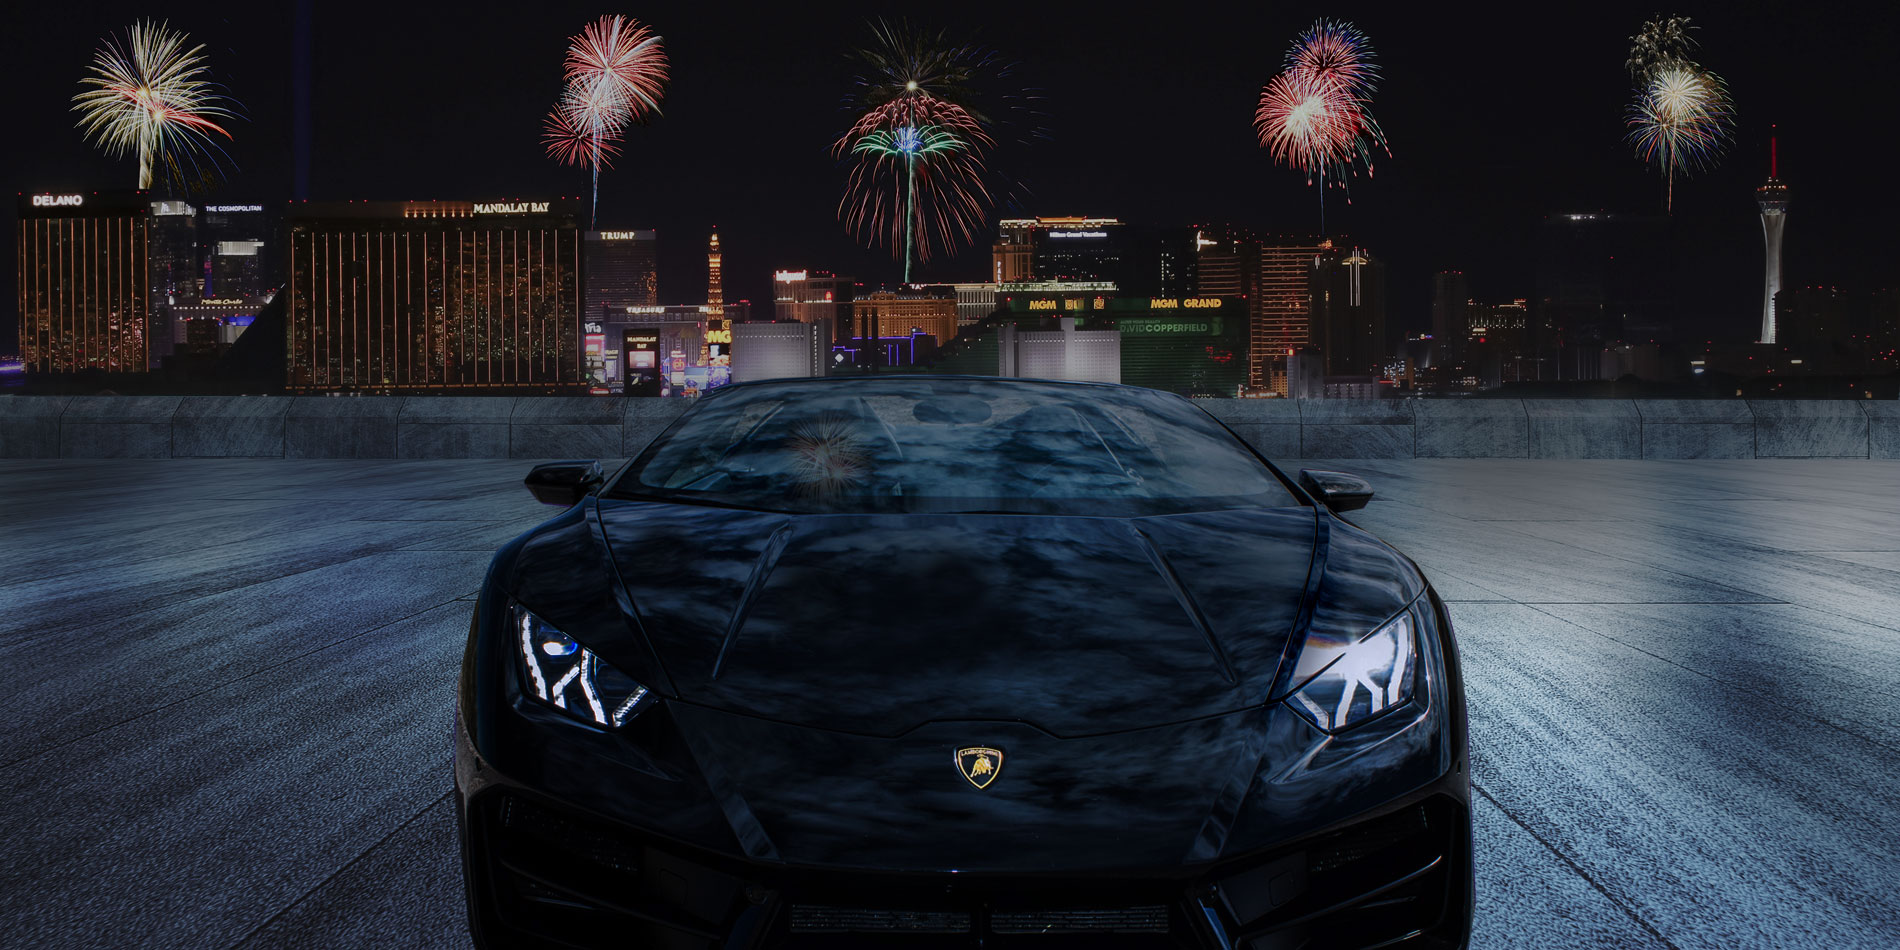 January 2020 Specials, $799 Lambos & Ferraris